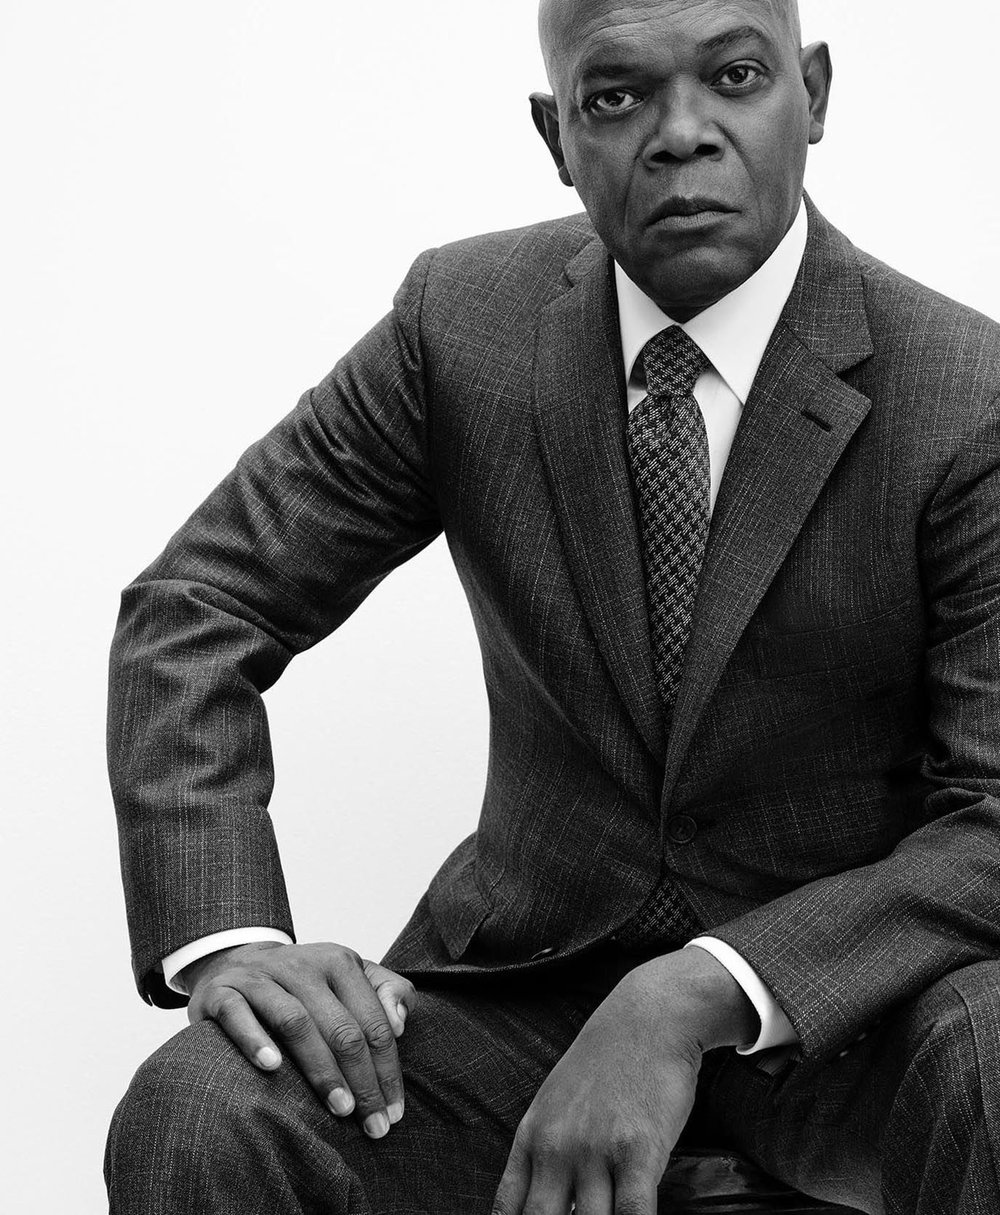 Brioni-advertising-Samuel-L-Jackson-suit.jpg